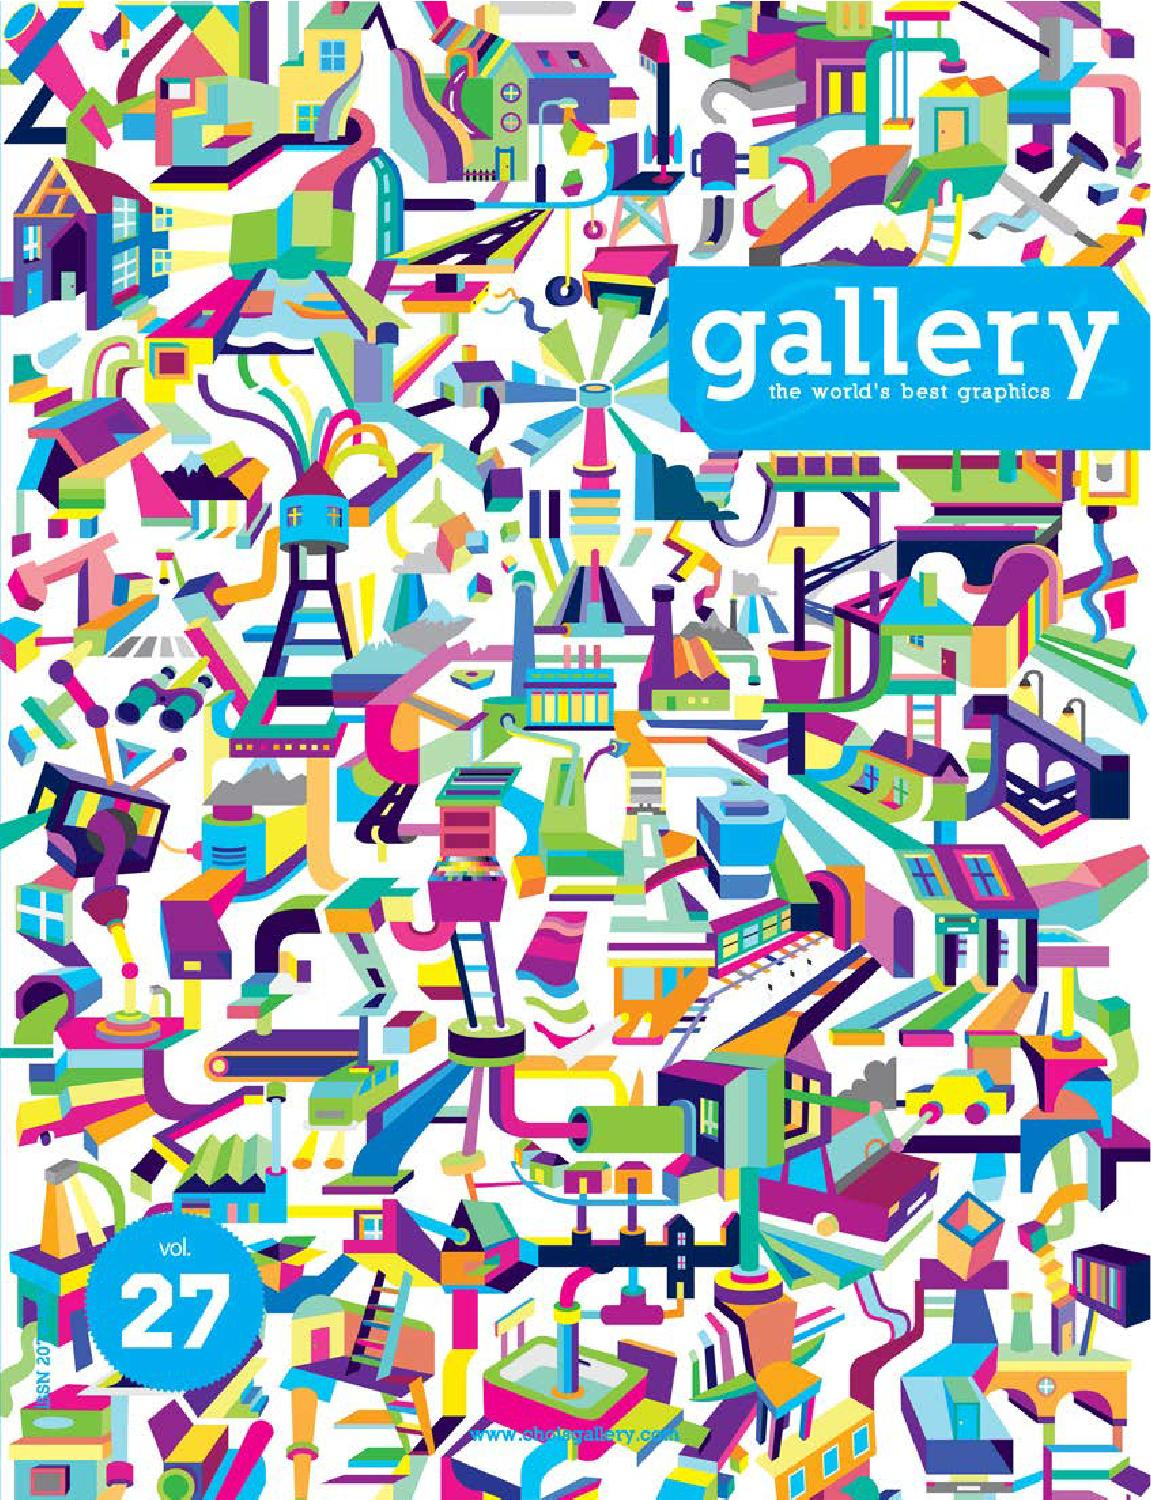 Thumbnail for Gallery vol.27